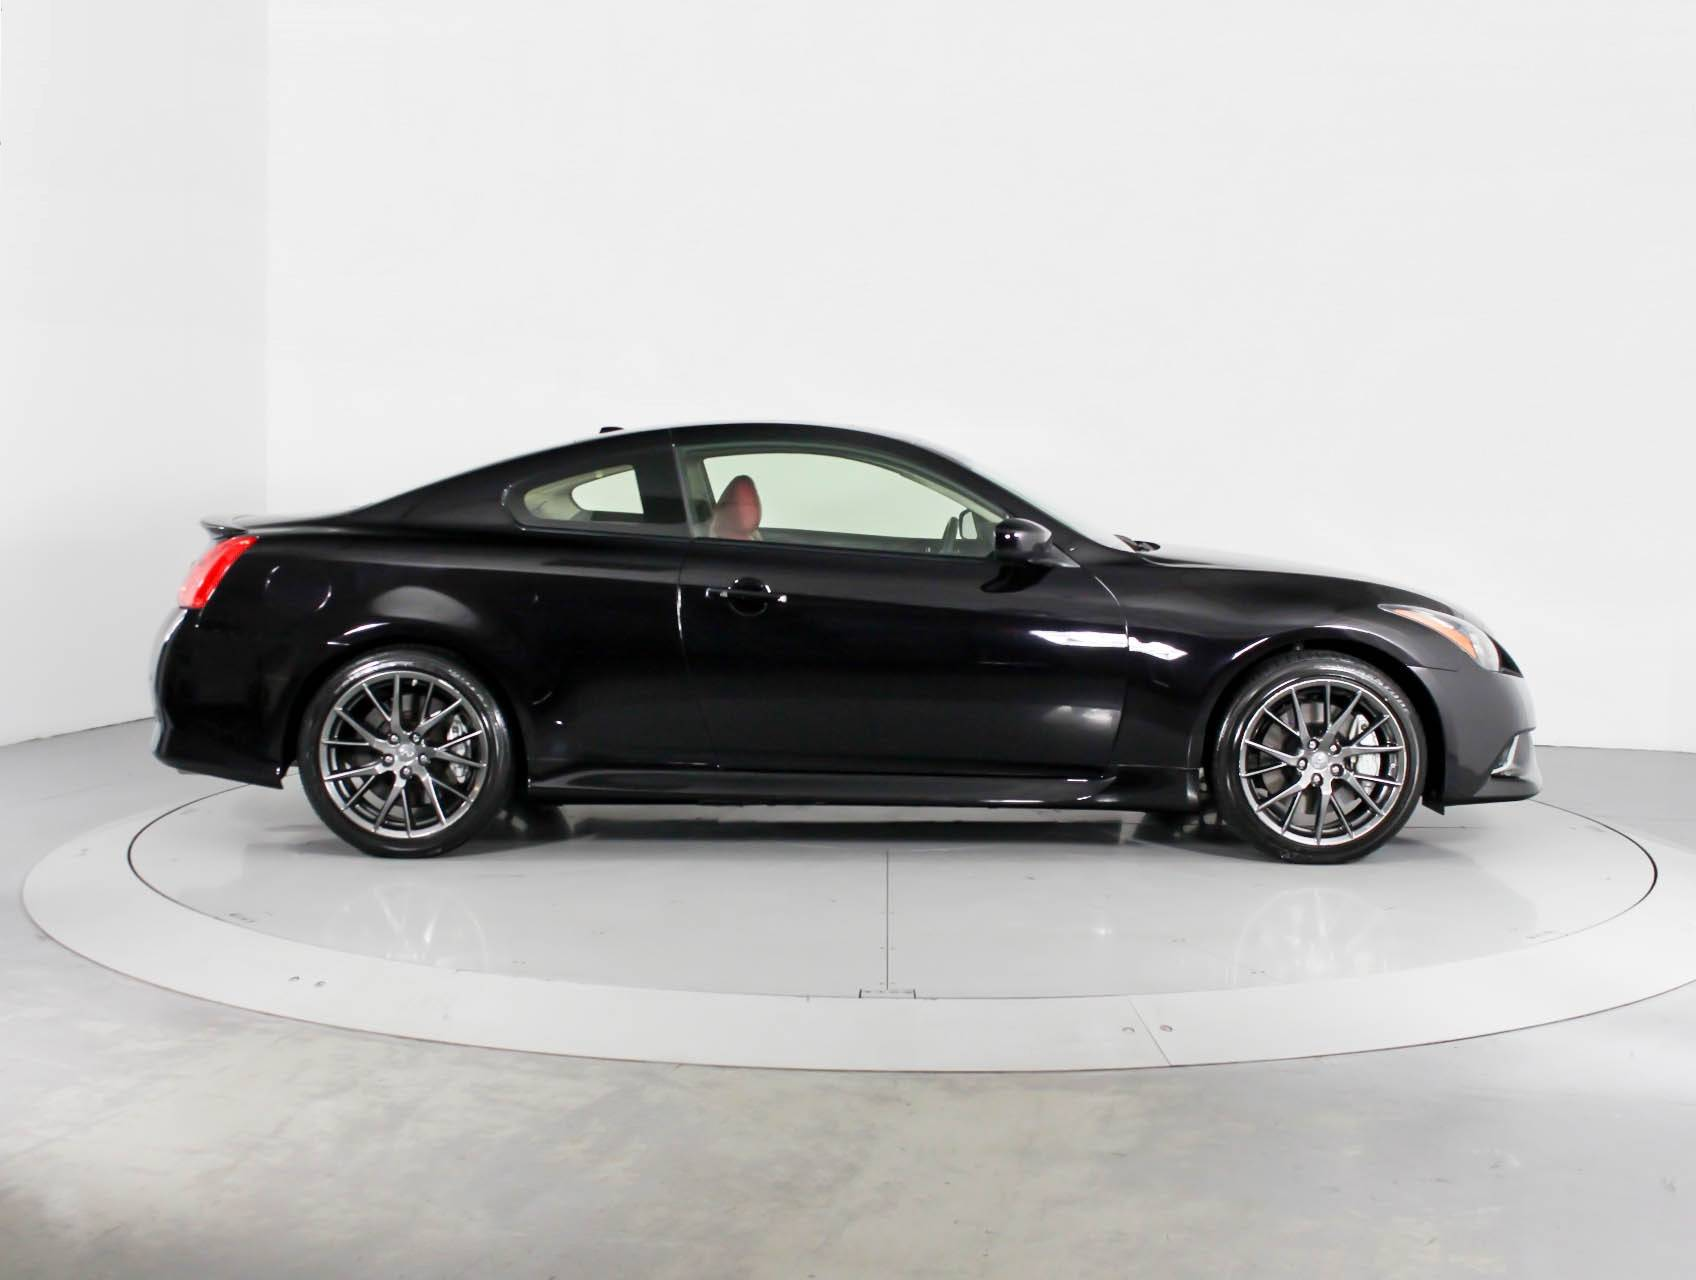 Used 2013 INFINITI G37 IPL Coupe for sale in WEST PALM FL